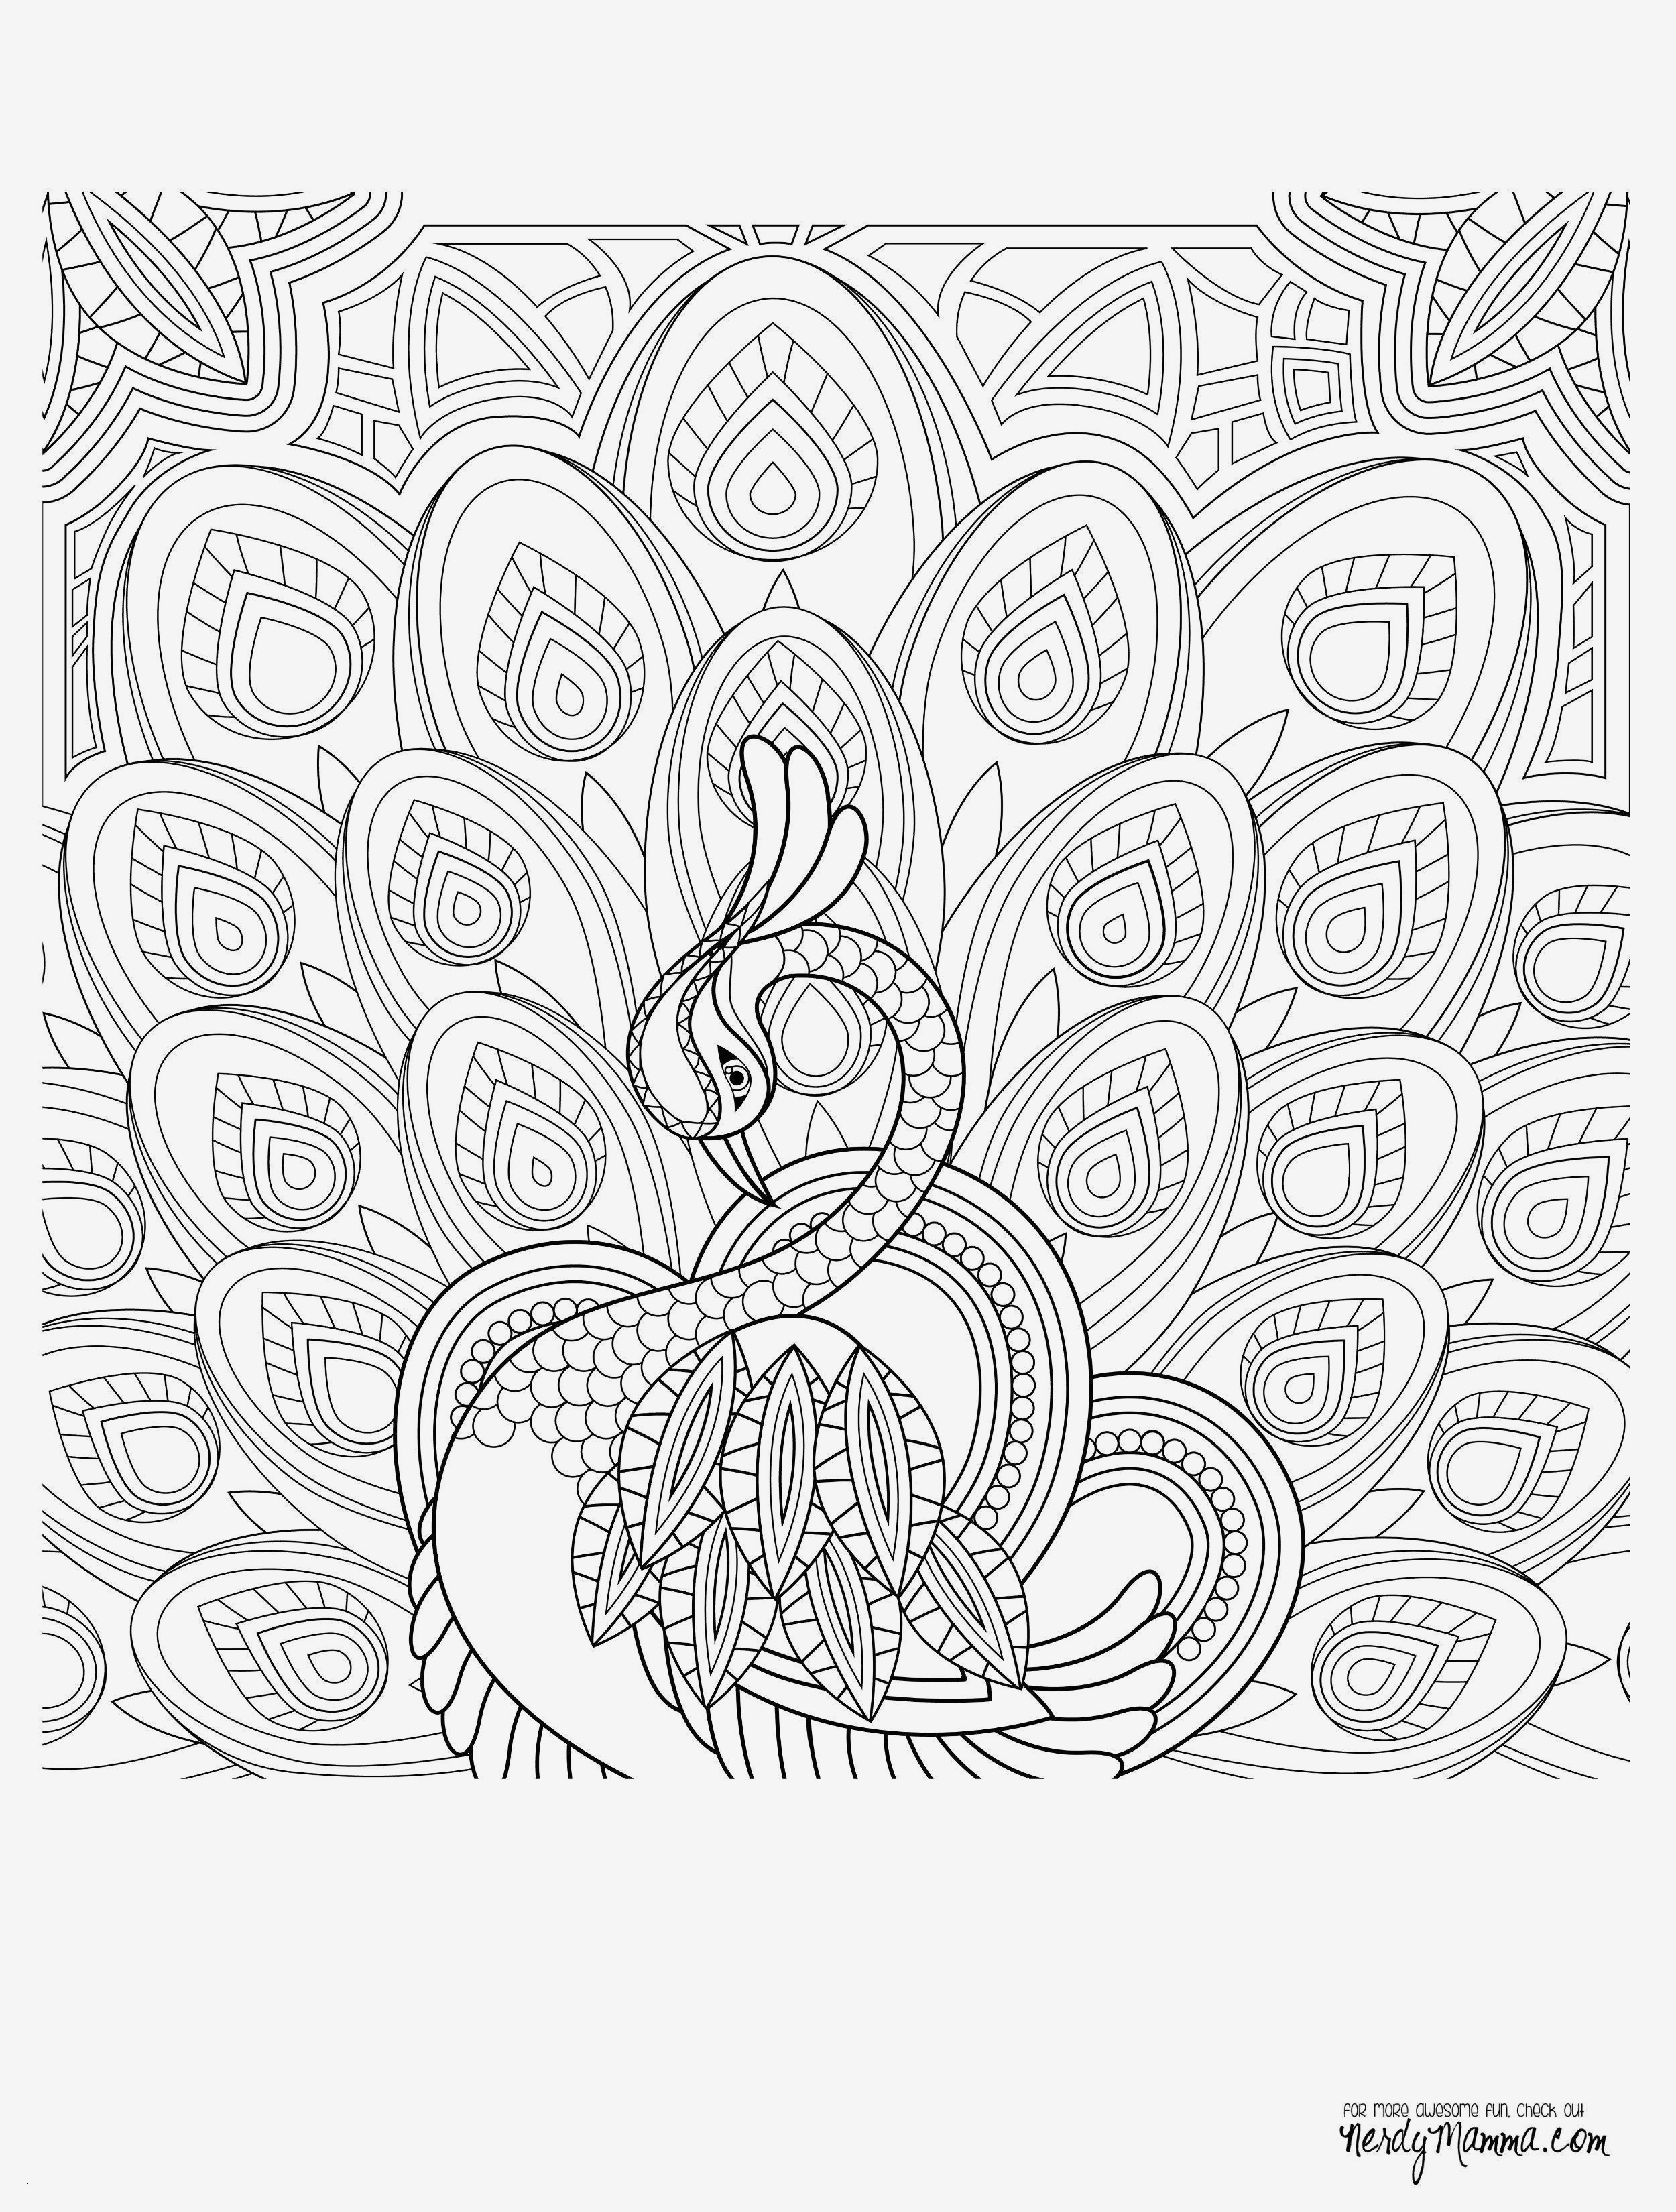 patriotic printable coloring pages Collection-Eagle Coloring Pages Easy and Fun Bald Eagle Coloring Page 21csb Eagle Coloring Pages Download 19-d